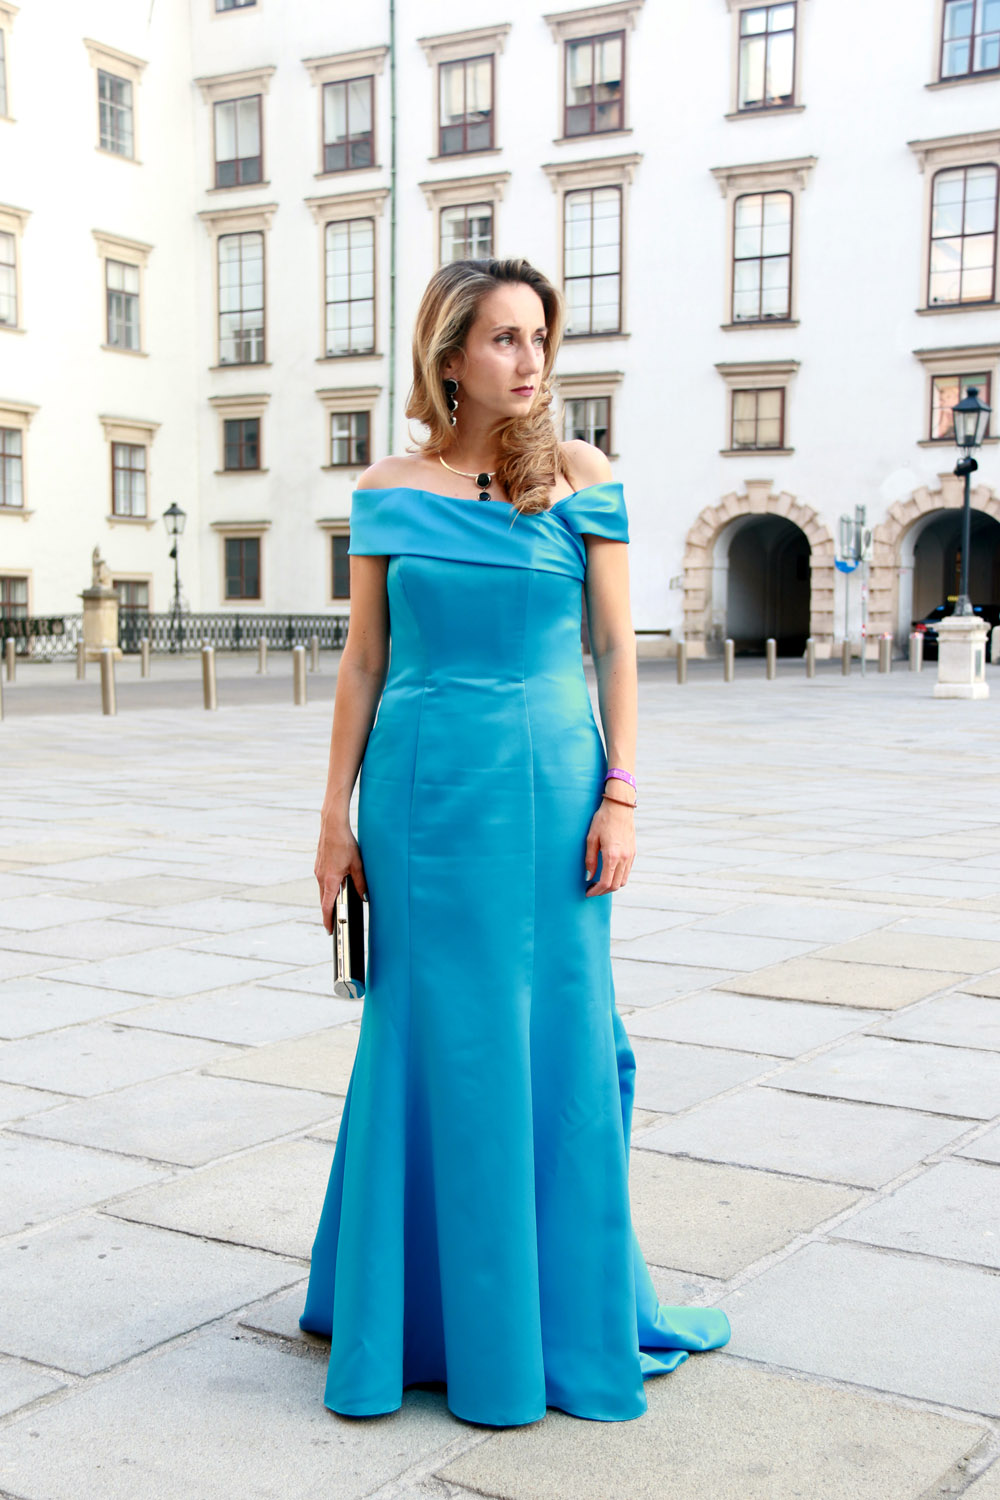 colourclub-fete-imperiale-outfit-flossmann-off-shoulder-dress-hofburg-viennavball-sommerball-michaelerplatz1